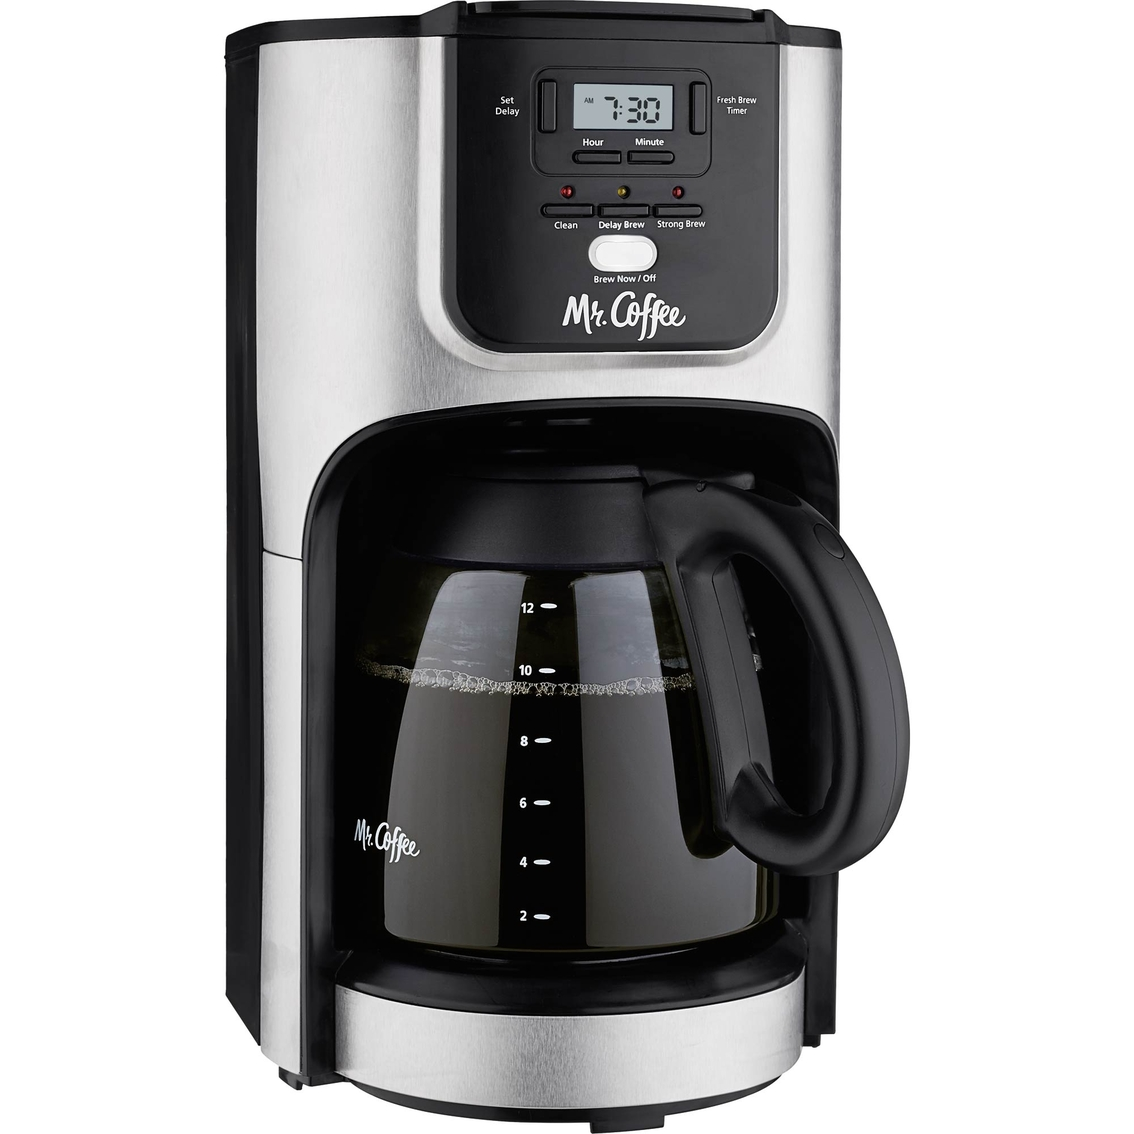 Mr. Coffee 12 Cup Programmable Coffee Maker Drip Coffeemakers Home & Appliances Shop The ...